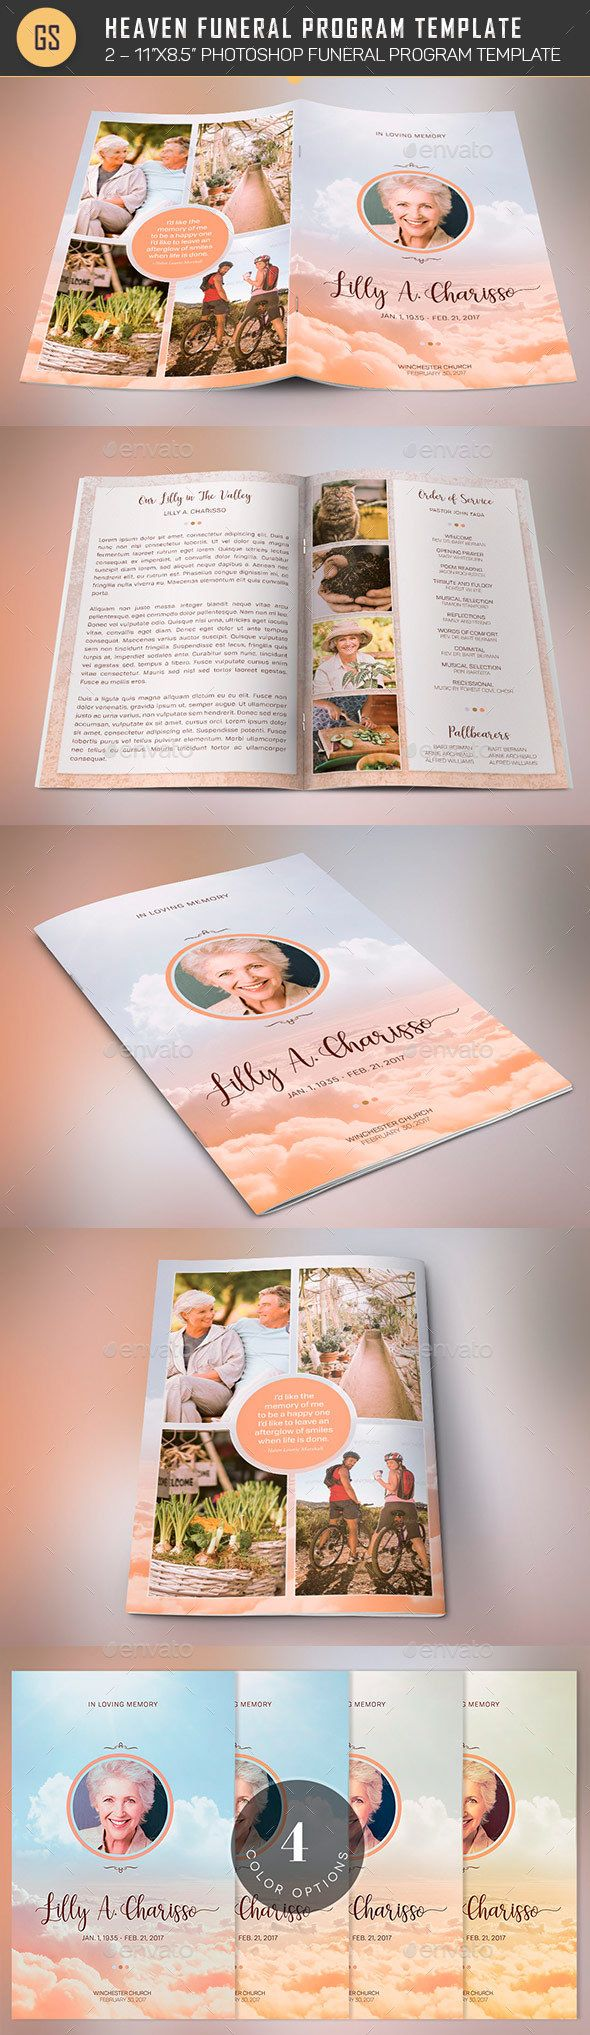 Heaven Funeral Program PSD Template By Godserv2 Is For Showcasing Many Images Of Your Loved One